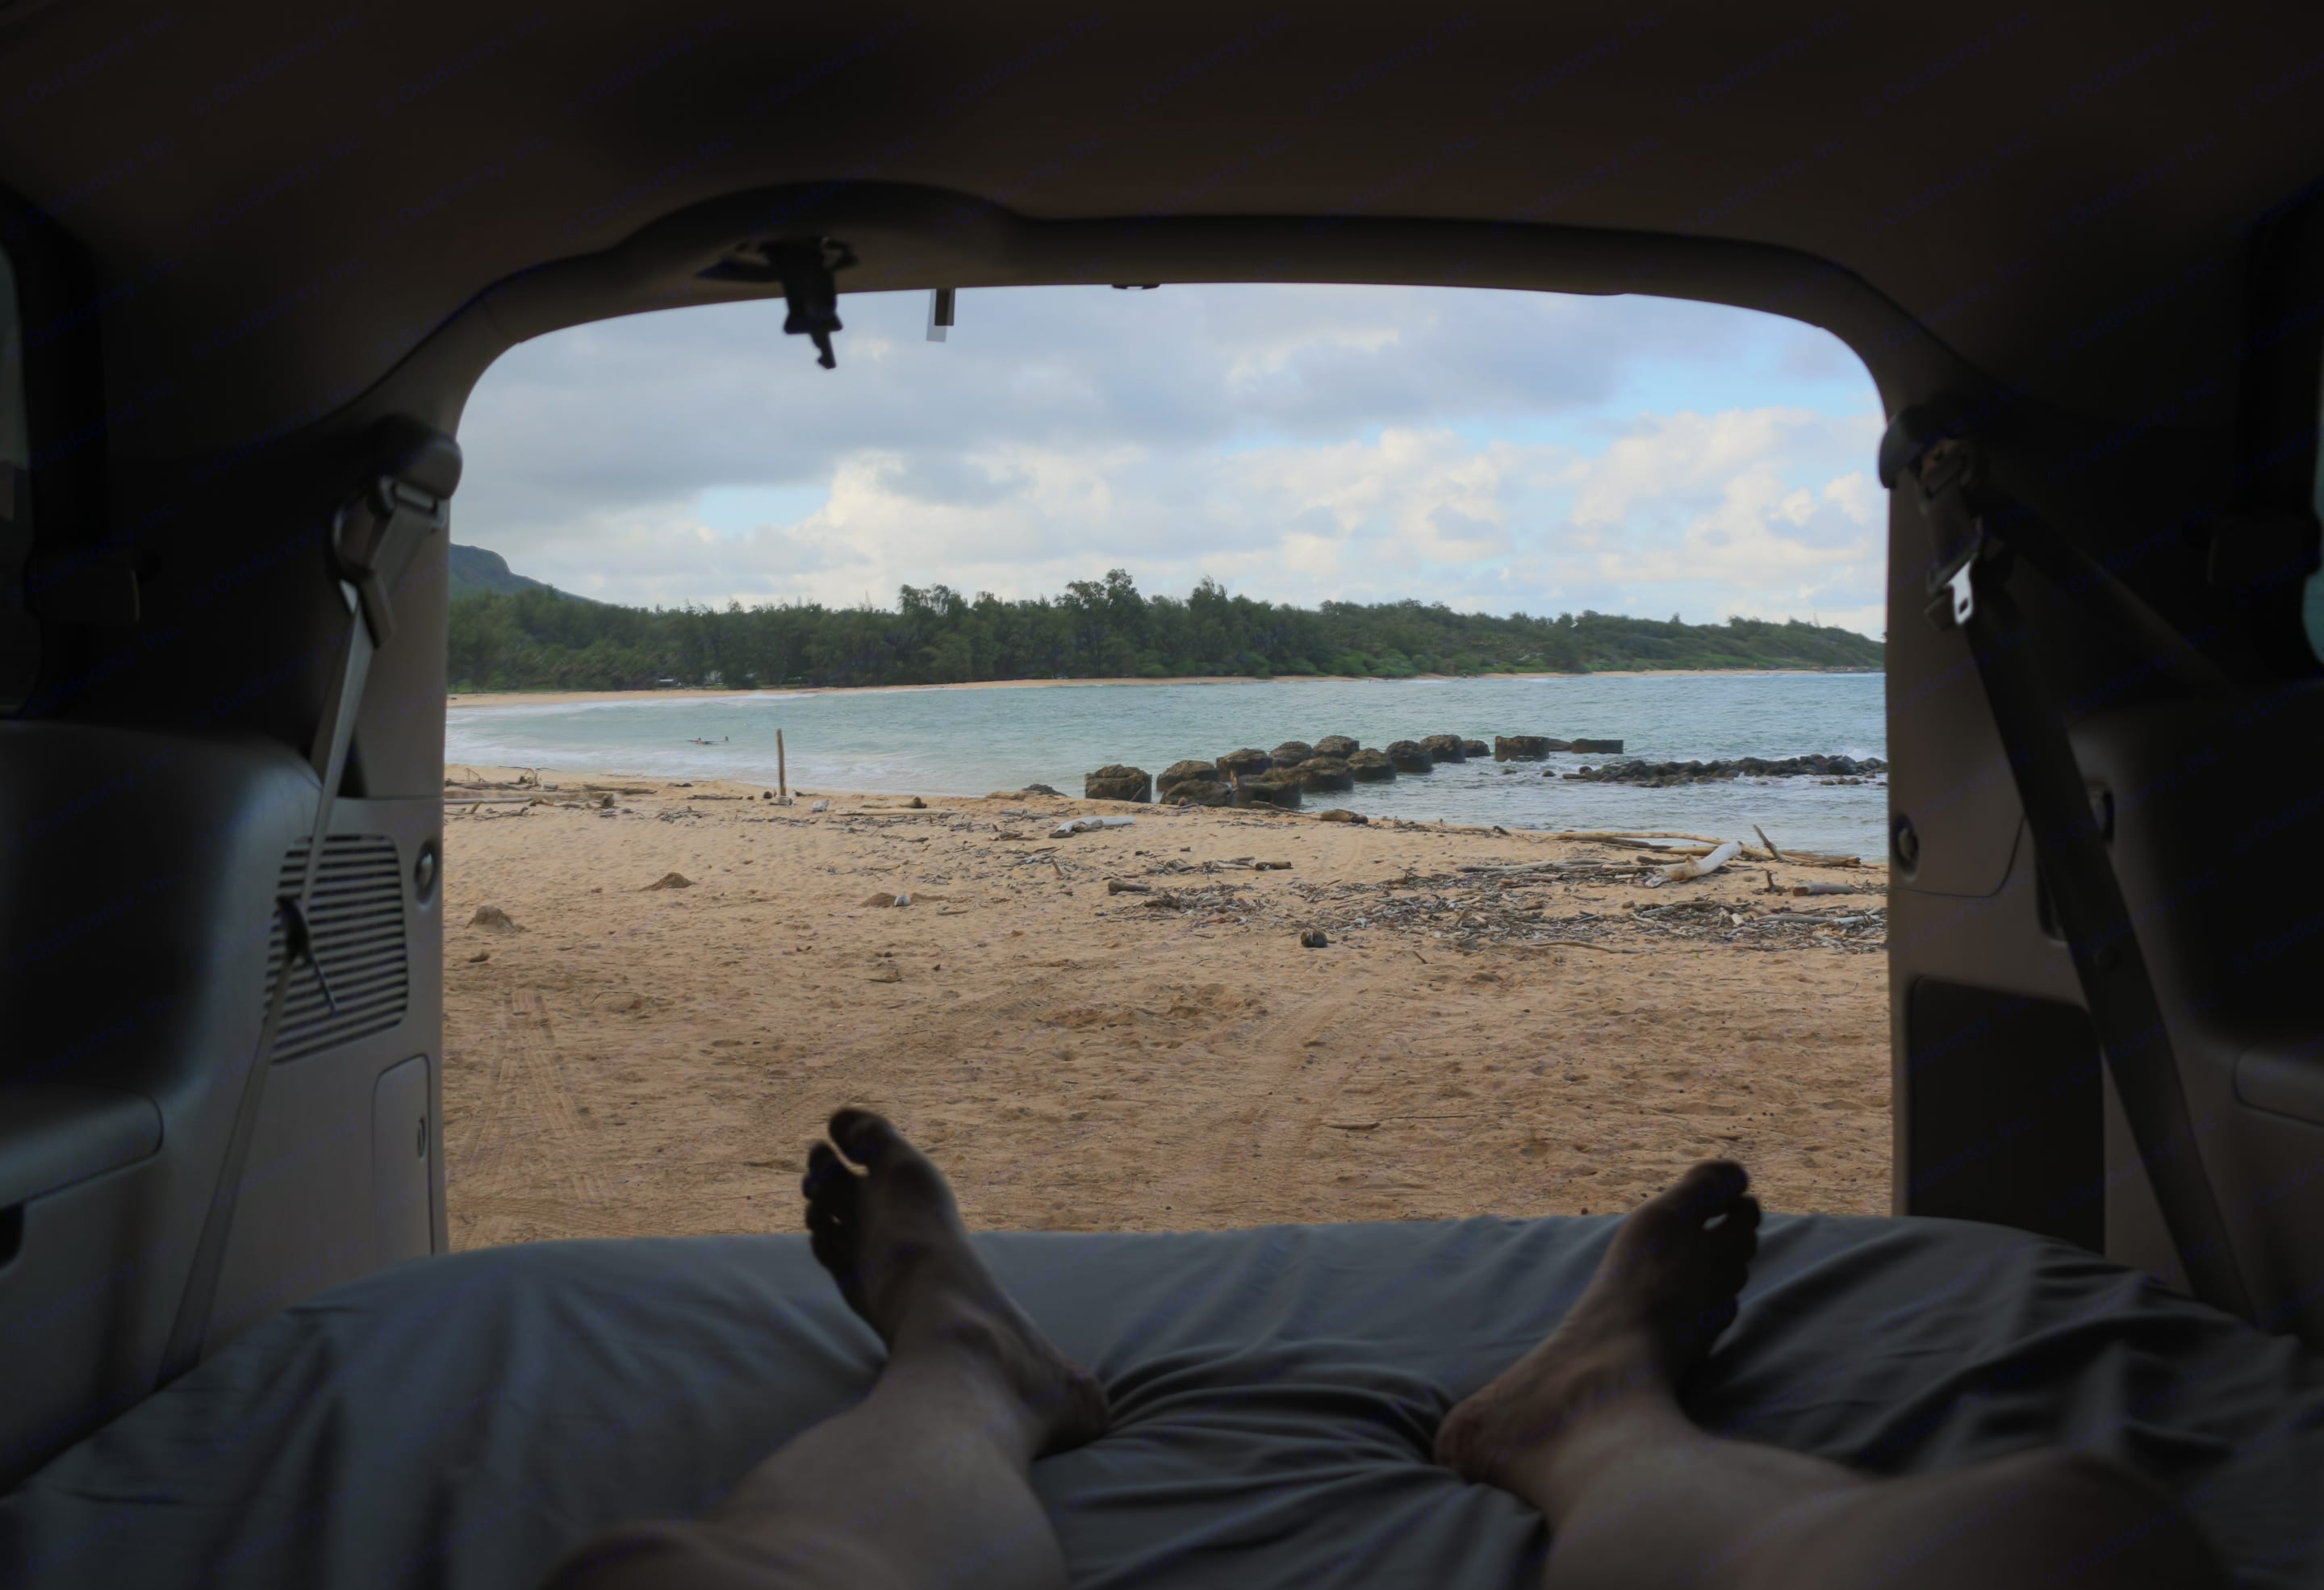 That's my kind of view. I love camping in this thing. . Toyota Sienna Camper 2004